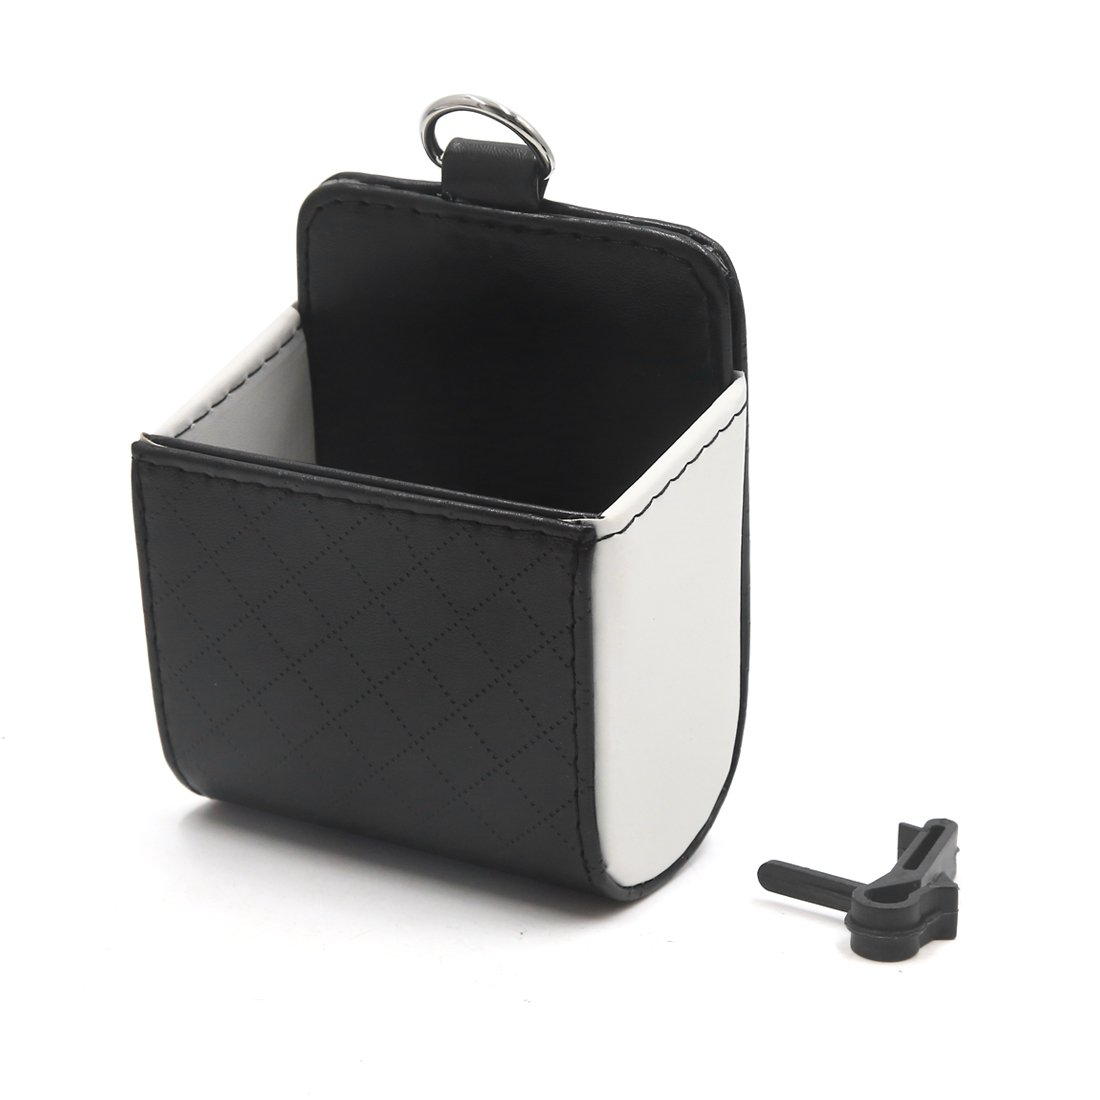 uxcell Black White Phone Pocket Multi-Functional Pouch Car Air Vent Storage Holder Bag